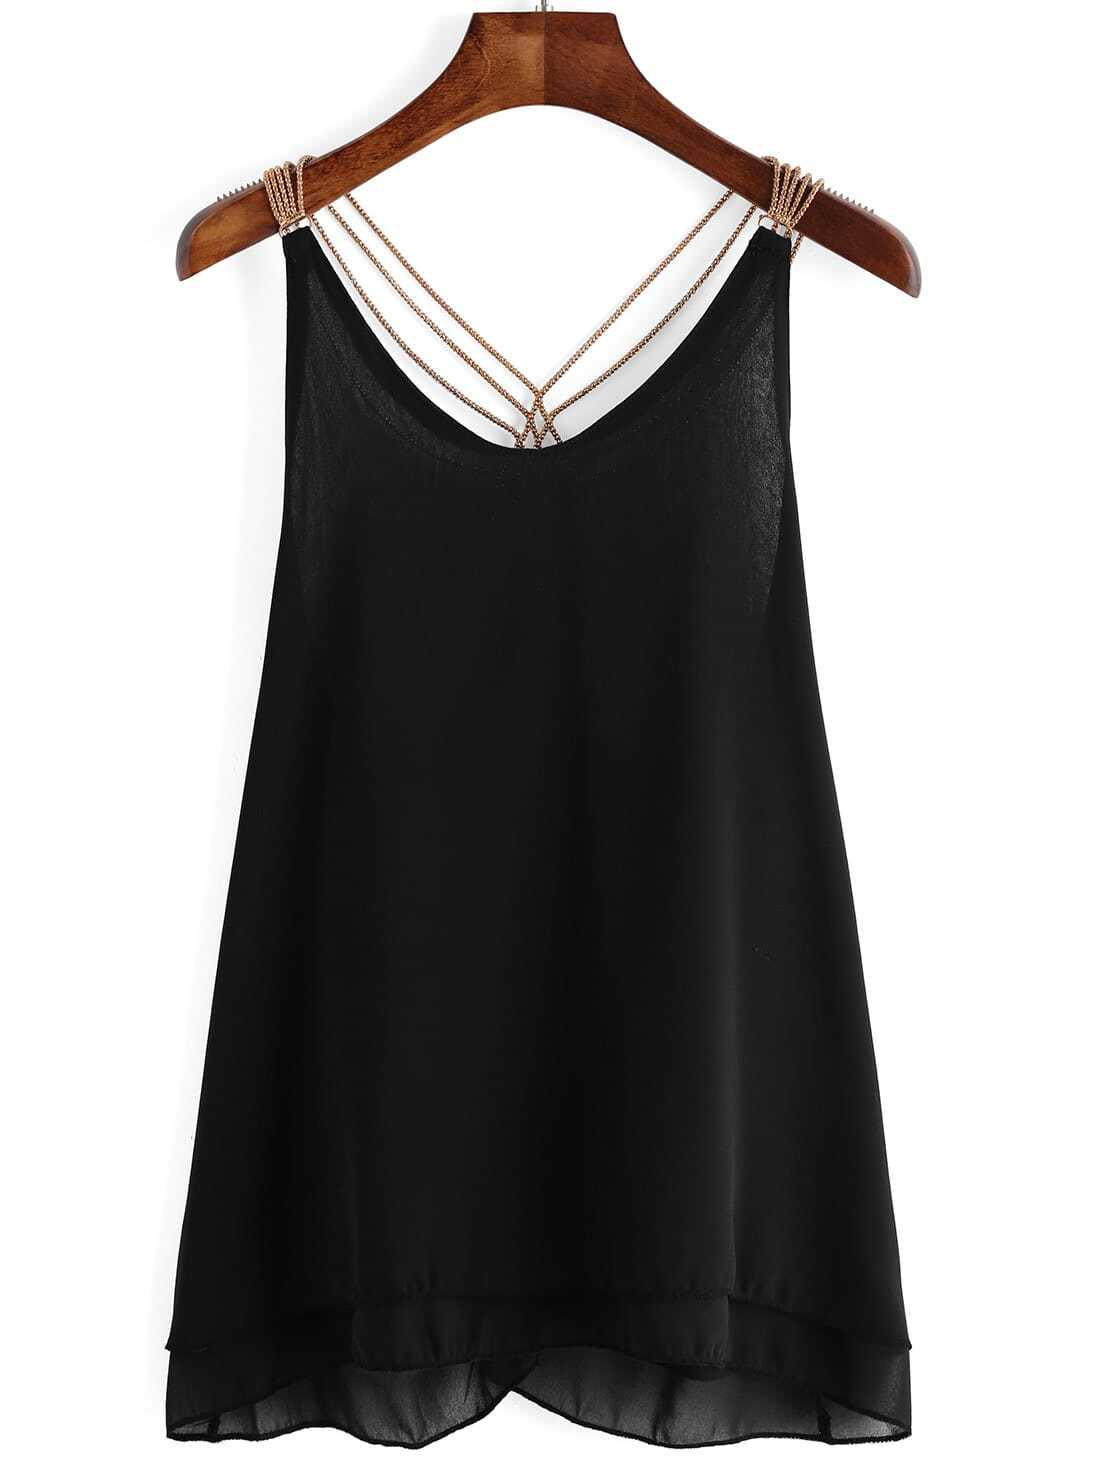 Image of Black Chain Strap Chiffon Cami Top